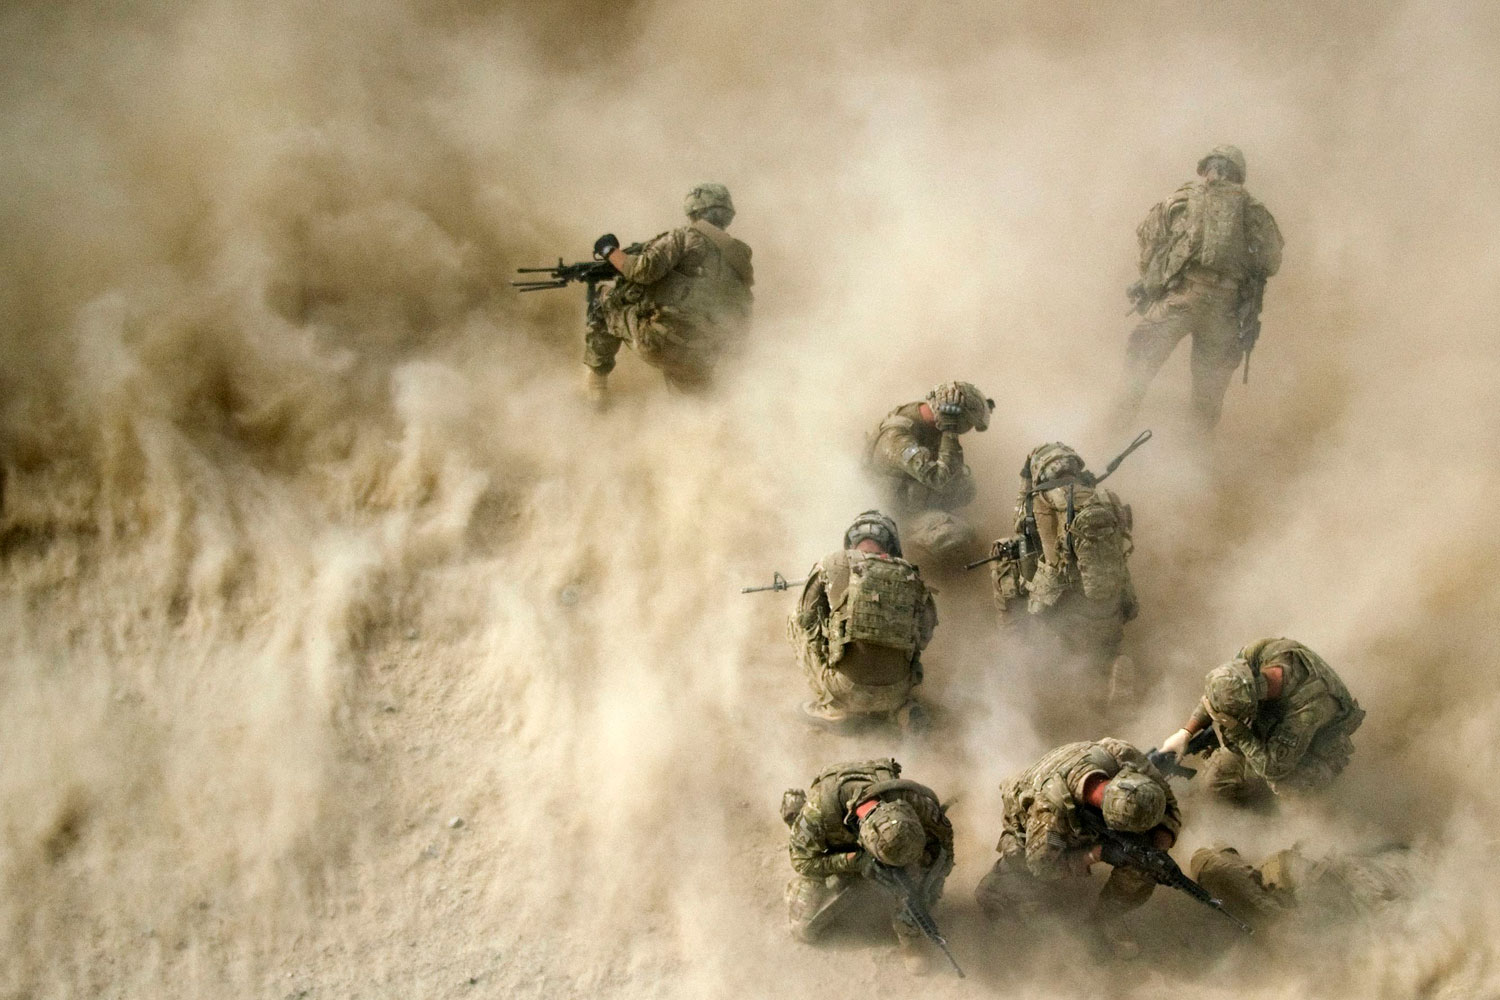 August23, 2011. U.S. troops in Afghanistan gather near a destroyed vehicle, protecting their faces from rotor wash as a medevac helicopter airlifts their wounded comrades. Three soldiers were hurt when their vehicle was destroyed by an improvised explosivedevice.